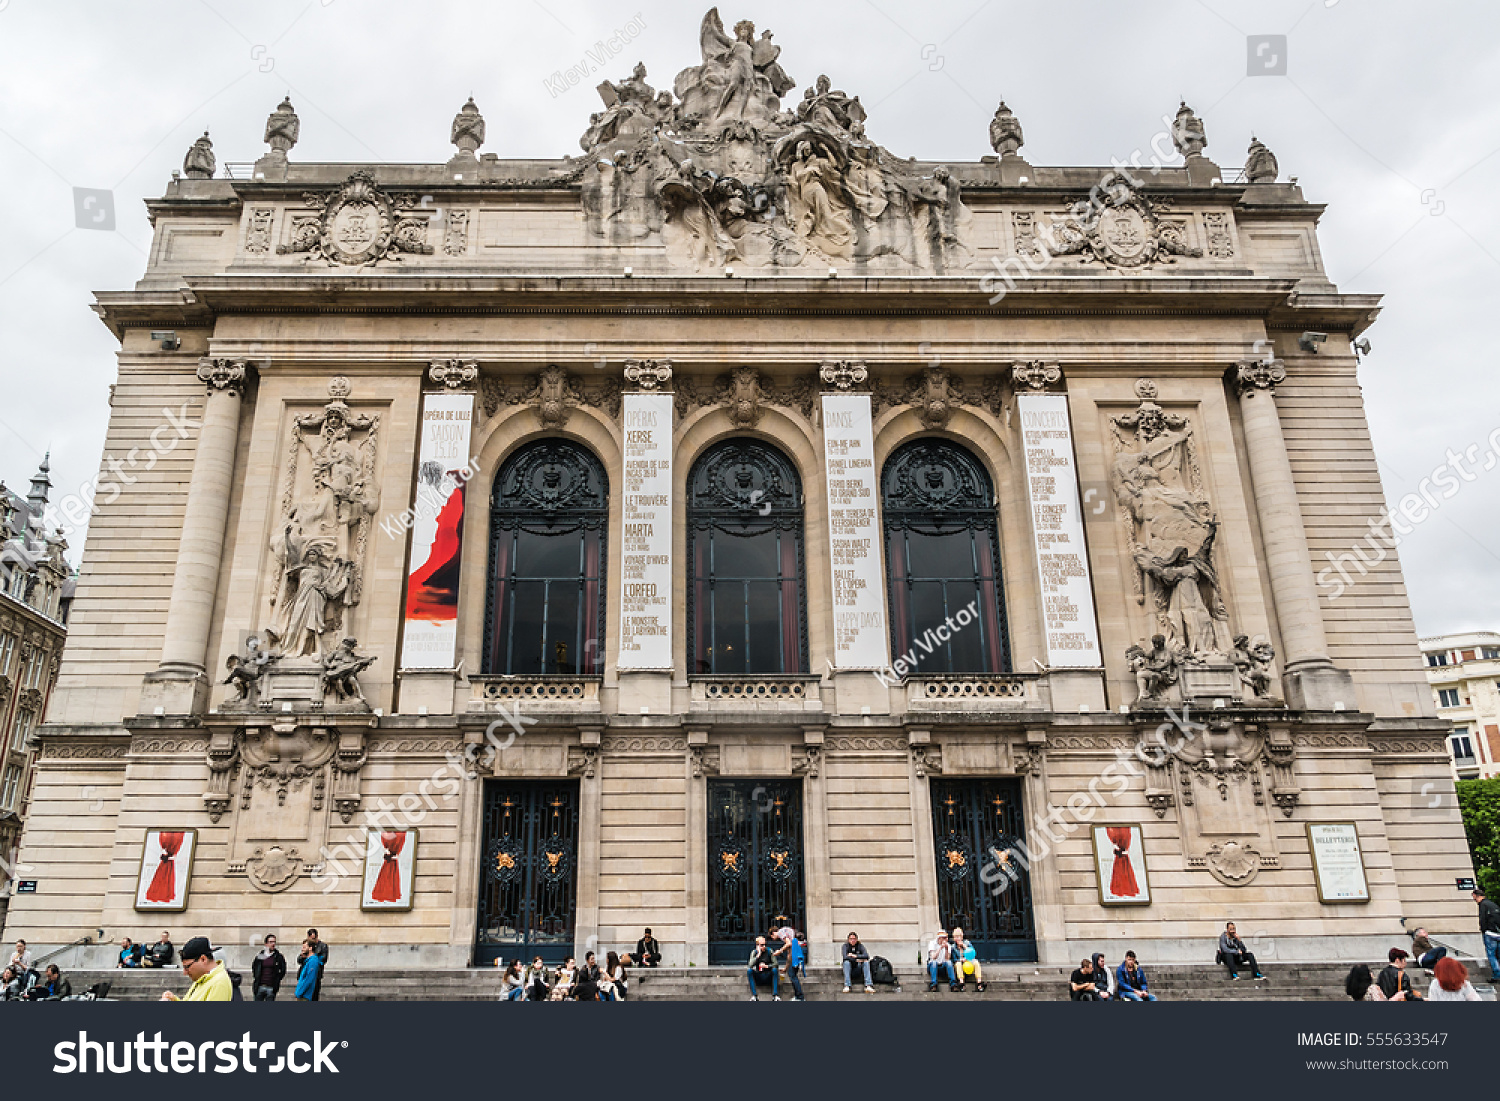 Lille france june 12 2016 architecture stock photo for Archi lille